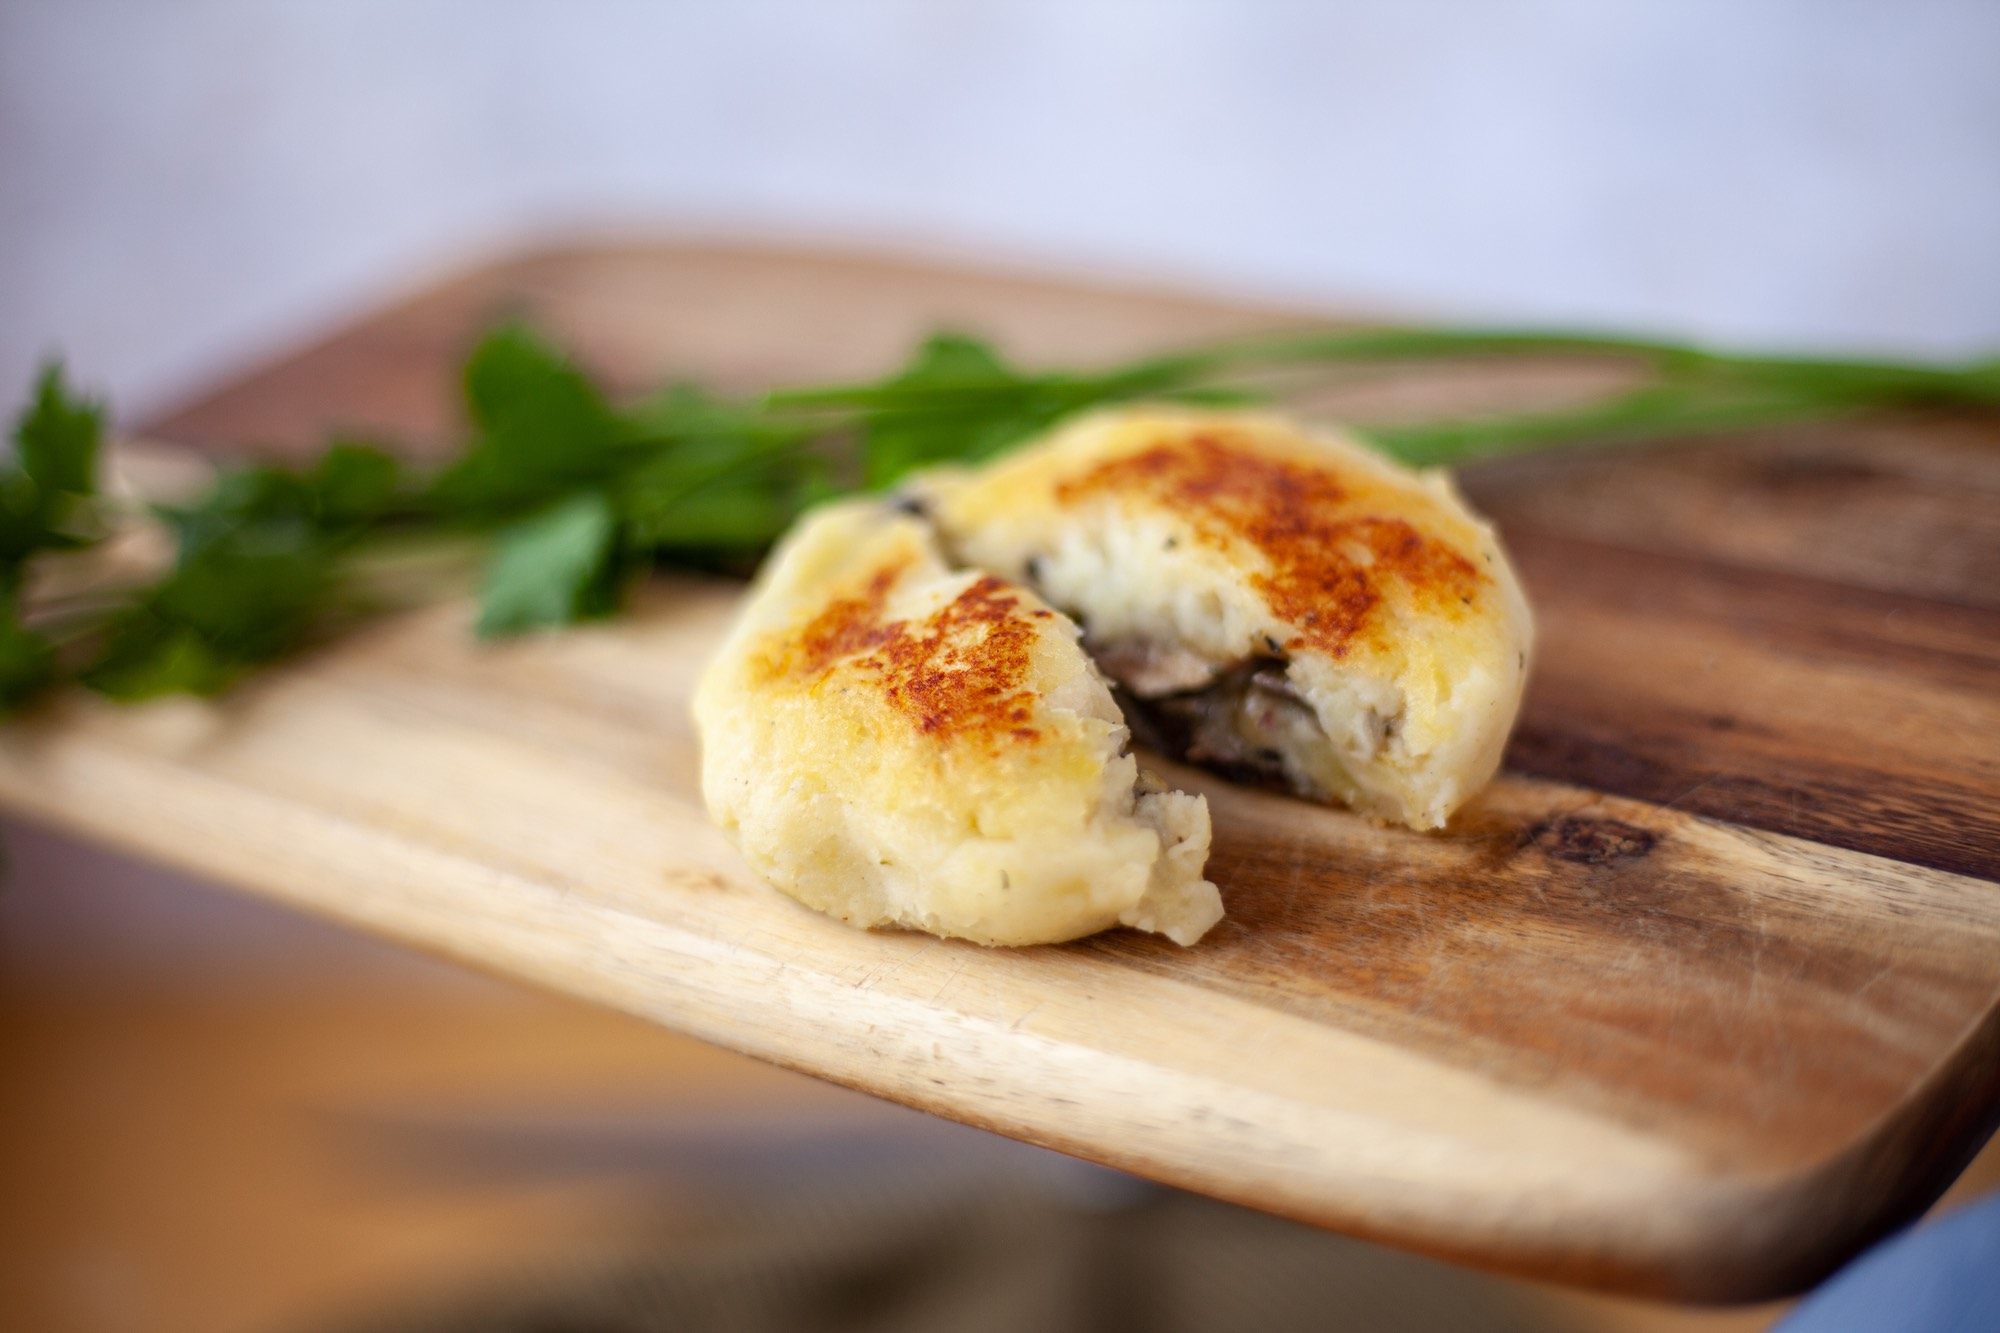 Potato Pattie stuffed with Mushroom Recipe